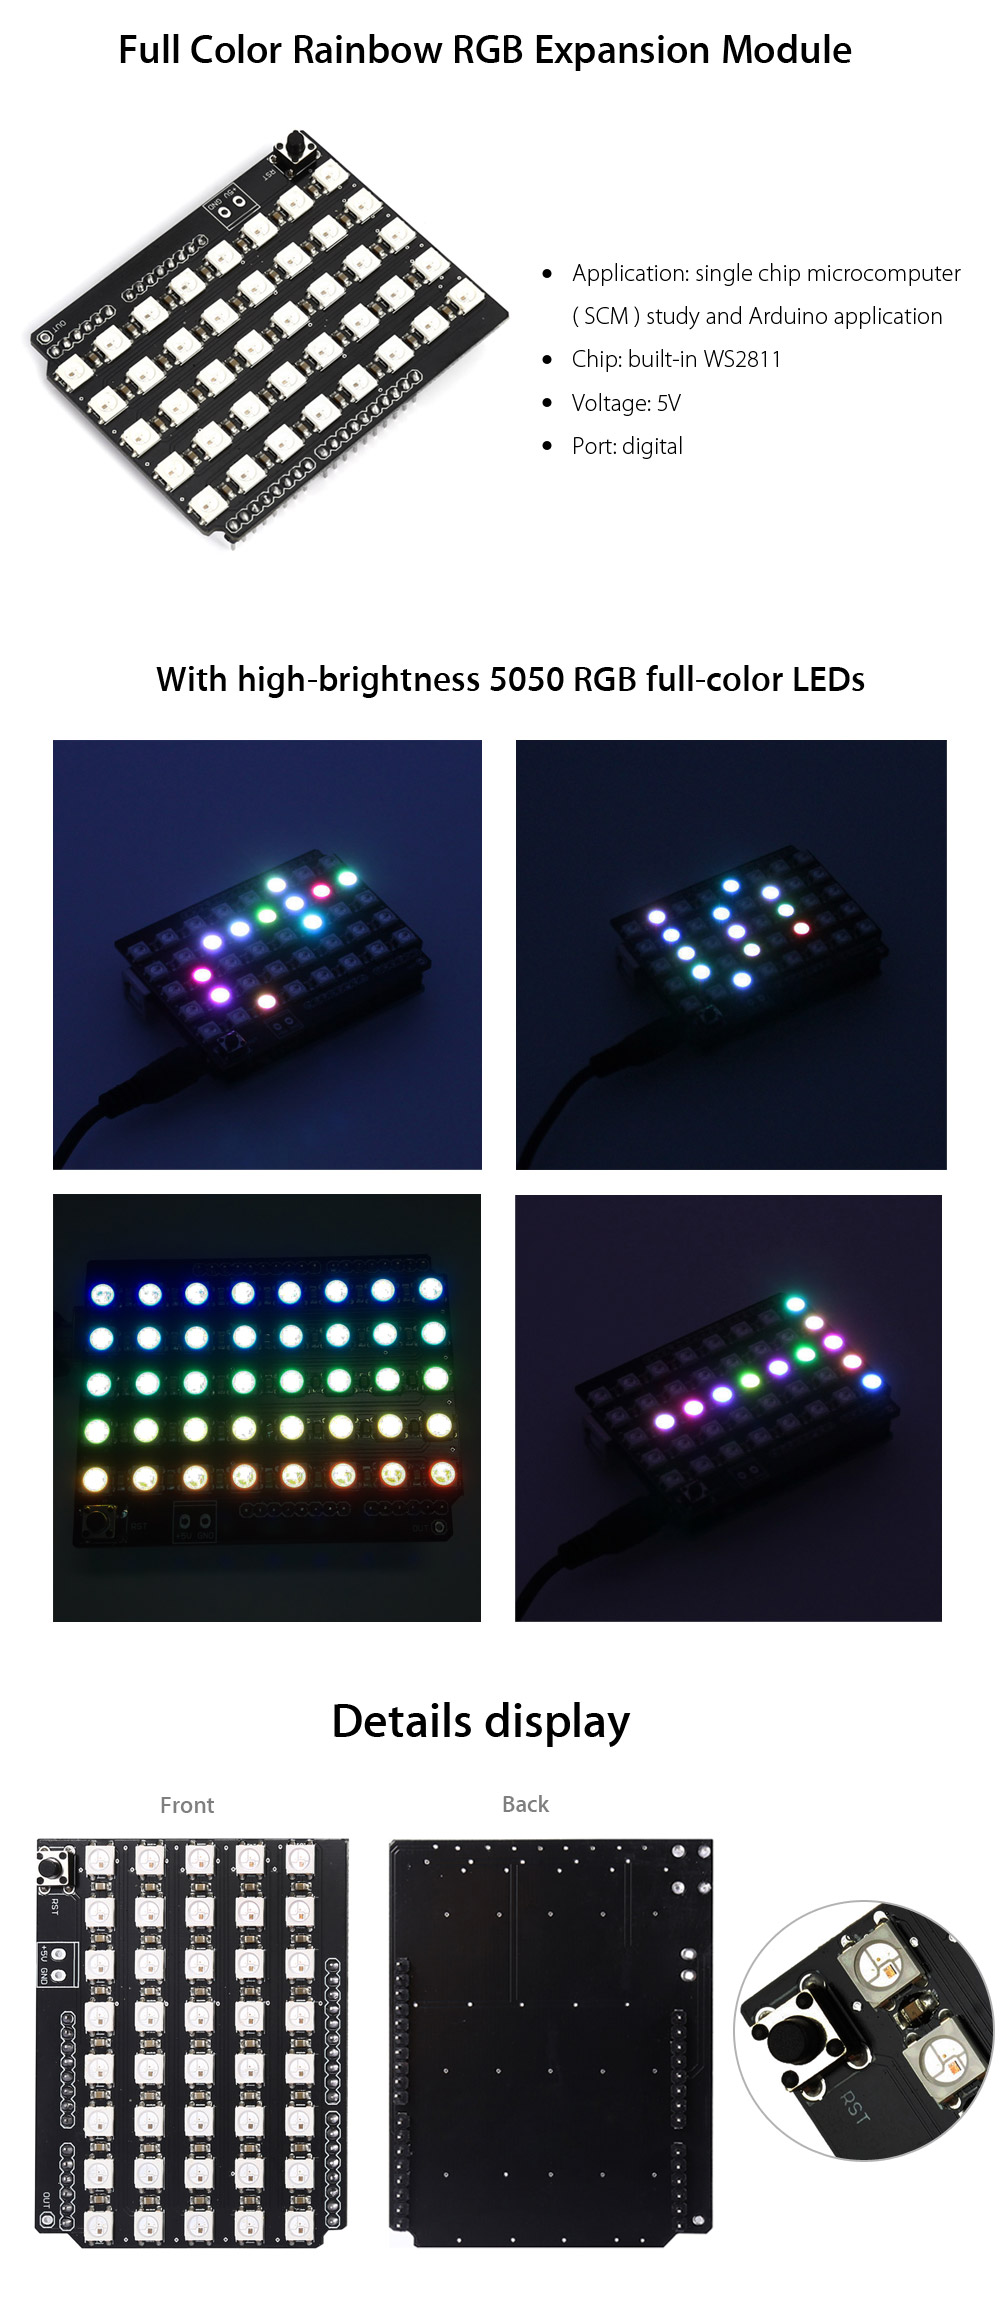 LDTR - ZK0001 Full Color Rainbow RGB Serial 5050 Expansion Board